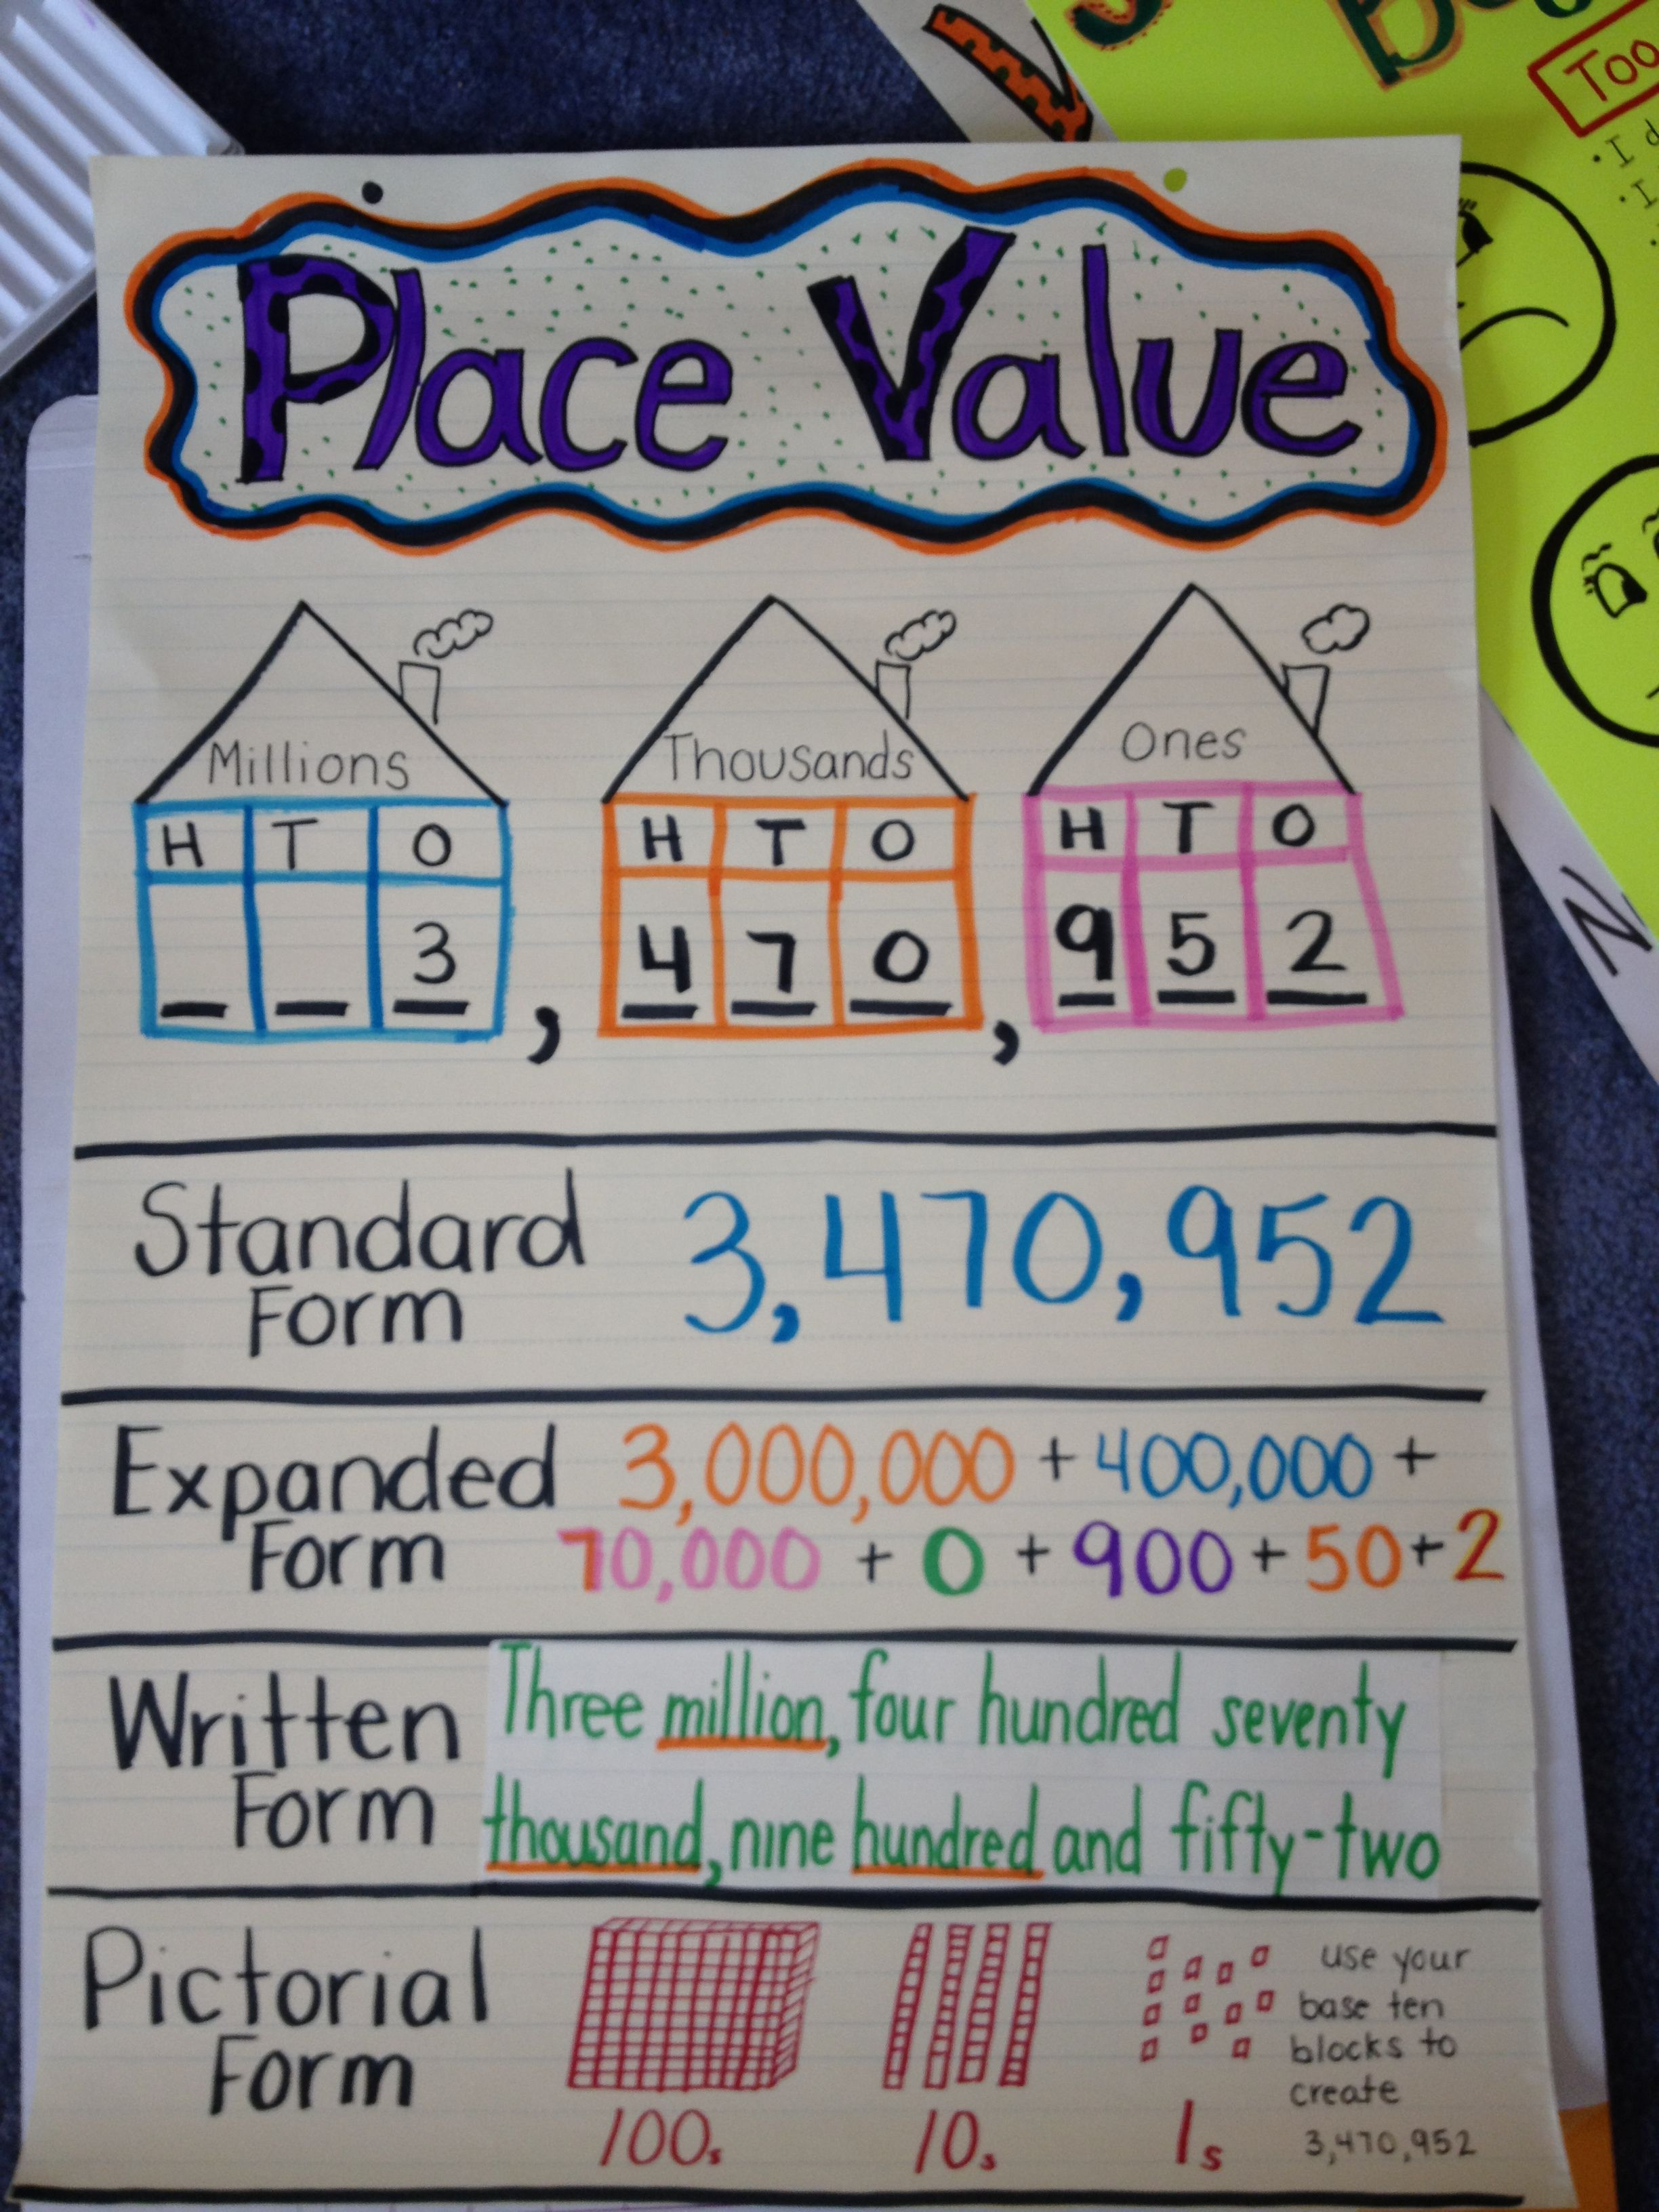 Place Value Anchor Chart With Images